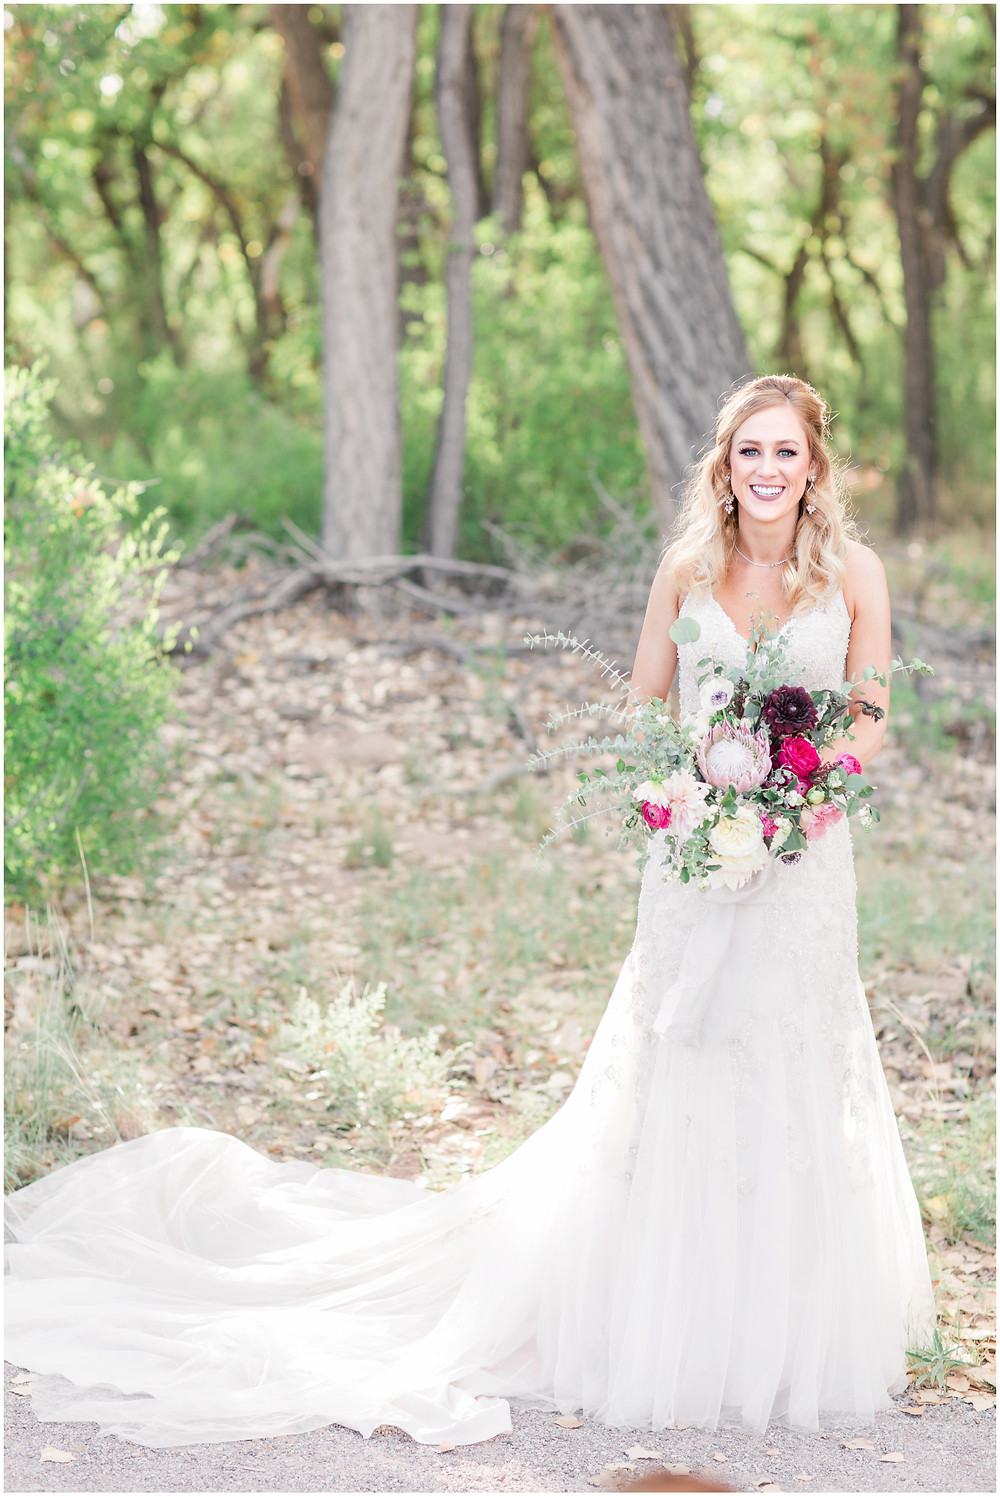 Wedding at Hyatt Tamaya. Outdoor wedding New Mexco. New Mexico Wedding photographer. maura Jane photography. burgundy wedding. organic bouquet. messy bouquet. wedding bouquet.